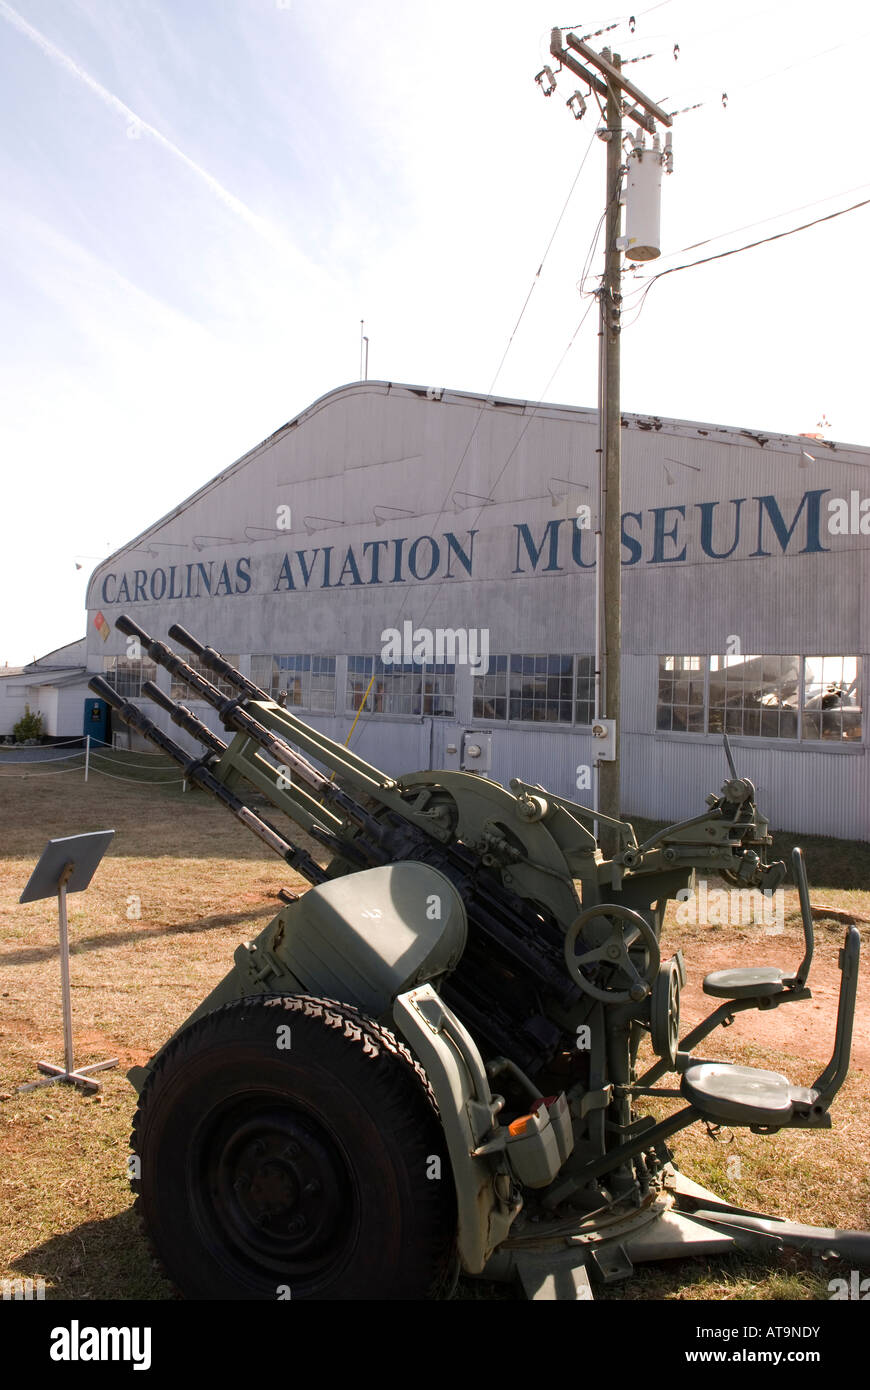 Carolinas Aviation Museum in Charlotte NC USA Stock Photo